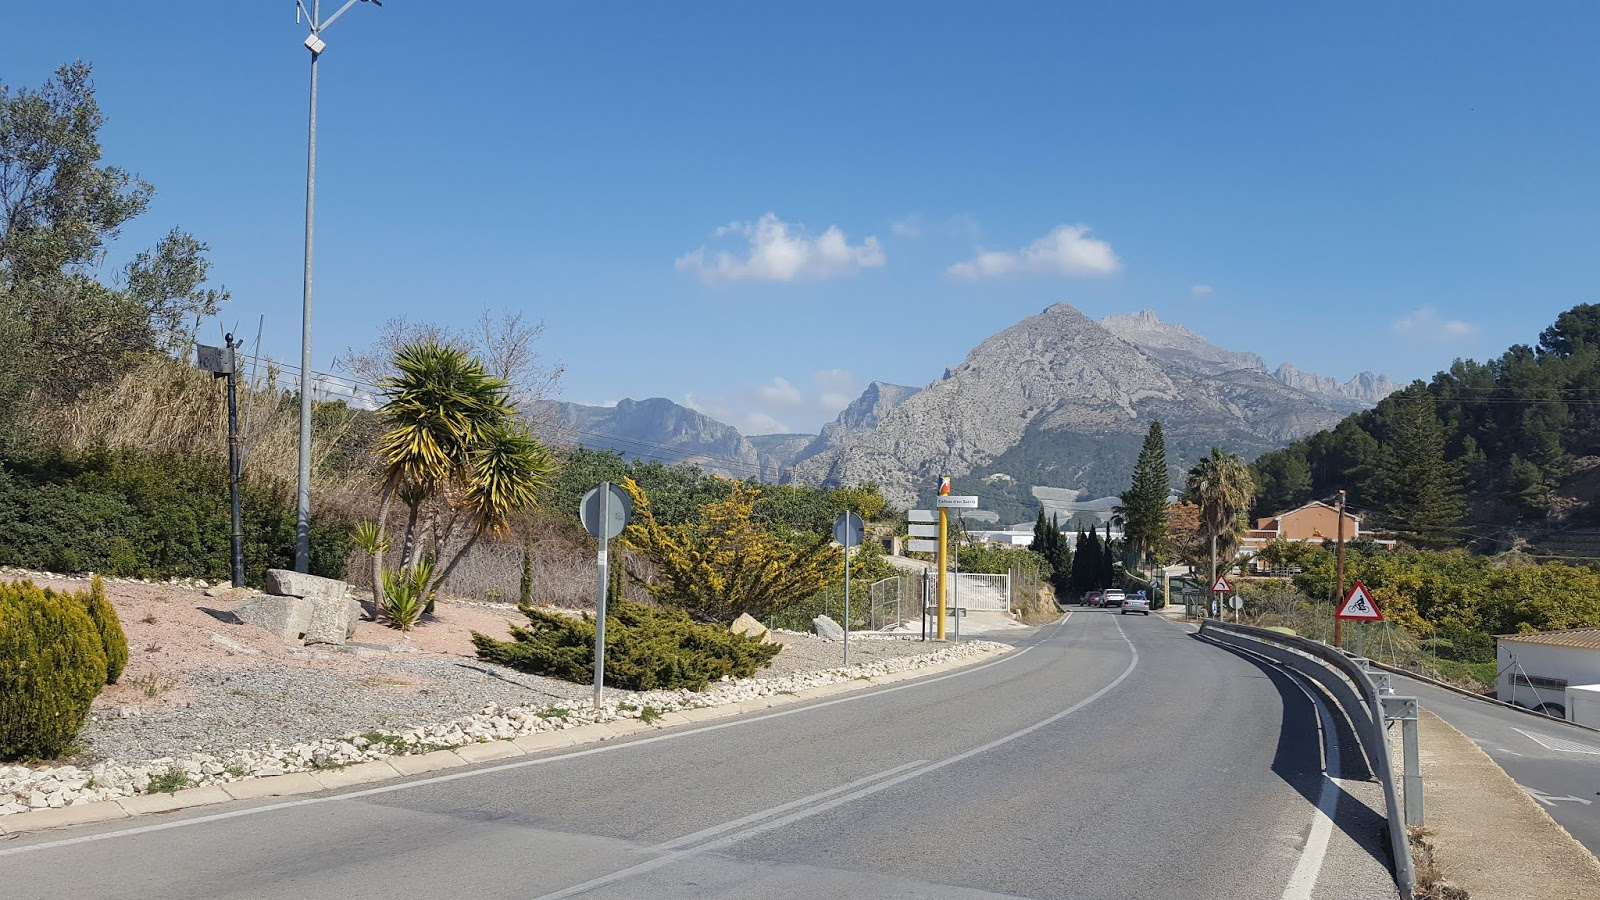 The southern approach to Coll de Rates from Callosa d'en Sarrià